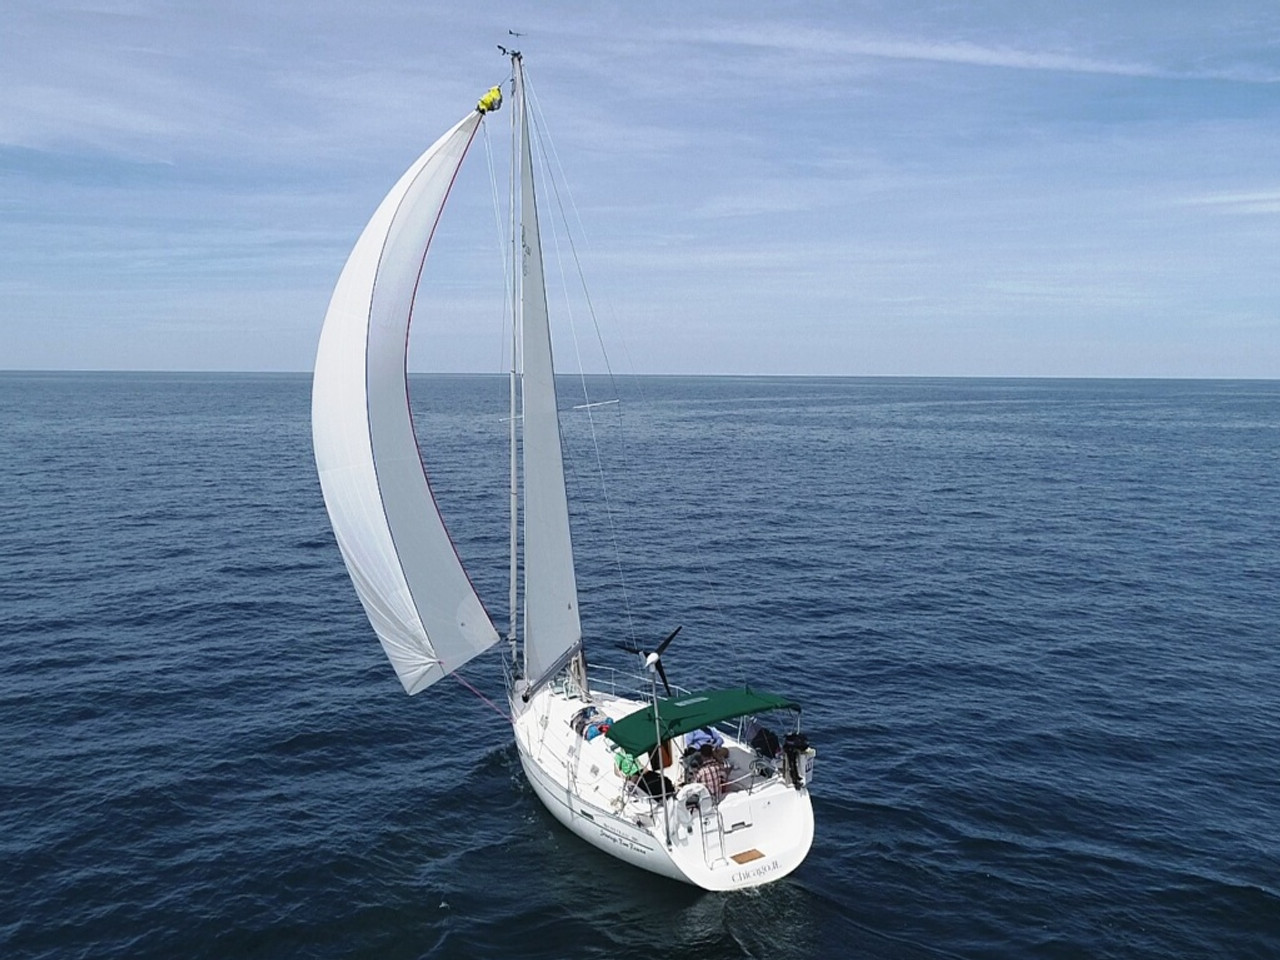 """Dan Ratko headed """"out-there"""" with his MK4+ , and a perfect spinnaker set in his  2000 Beneteau 331 """"Strategic Rum Reserve"""""""